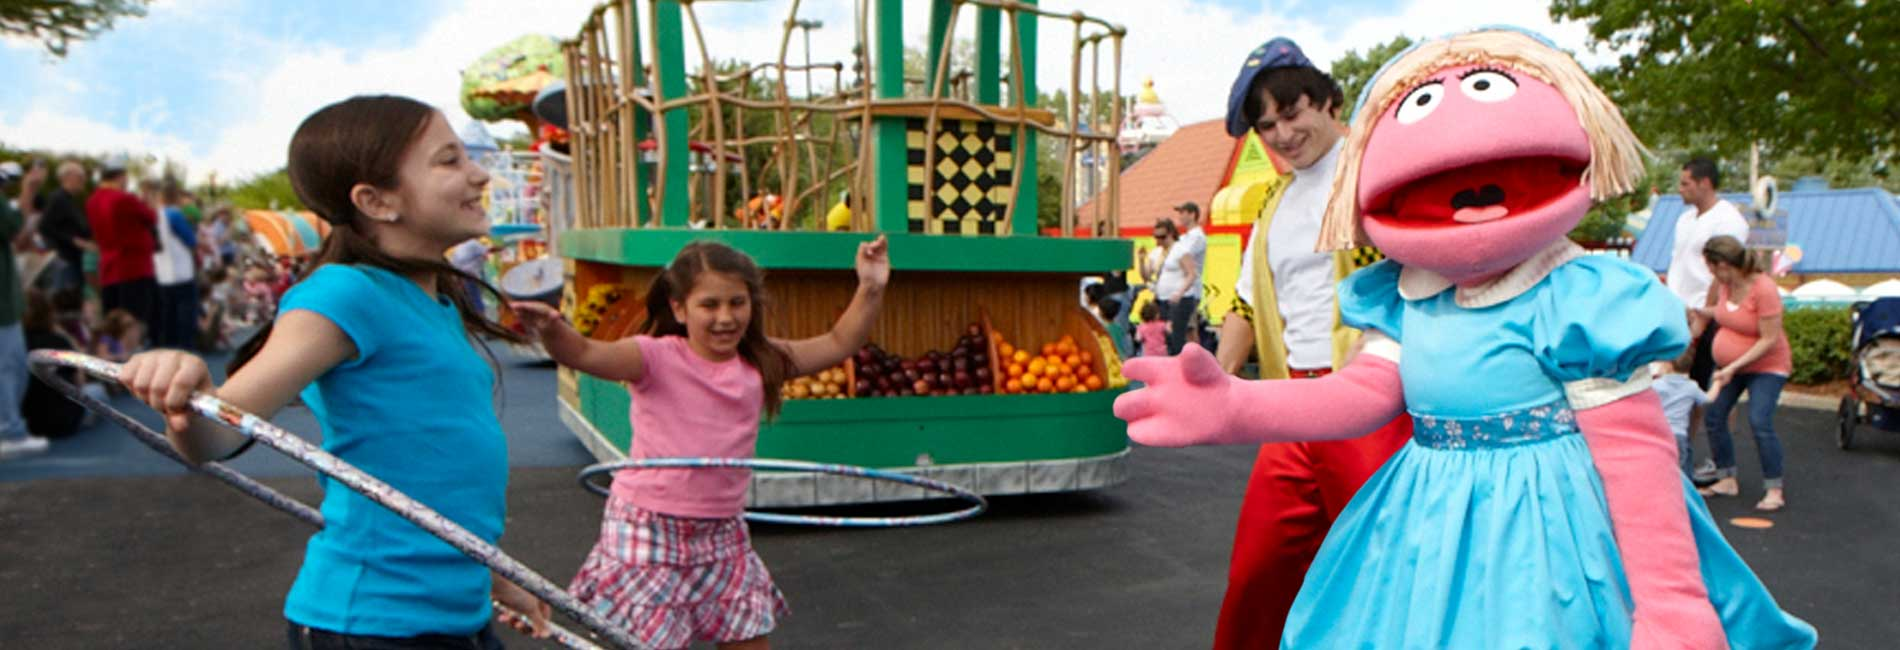 Prairie Dawn plays with a group of kids outside at Sesame Place theme park